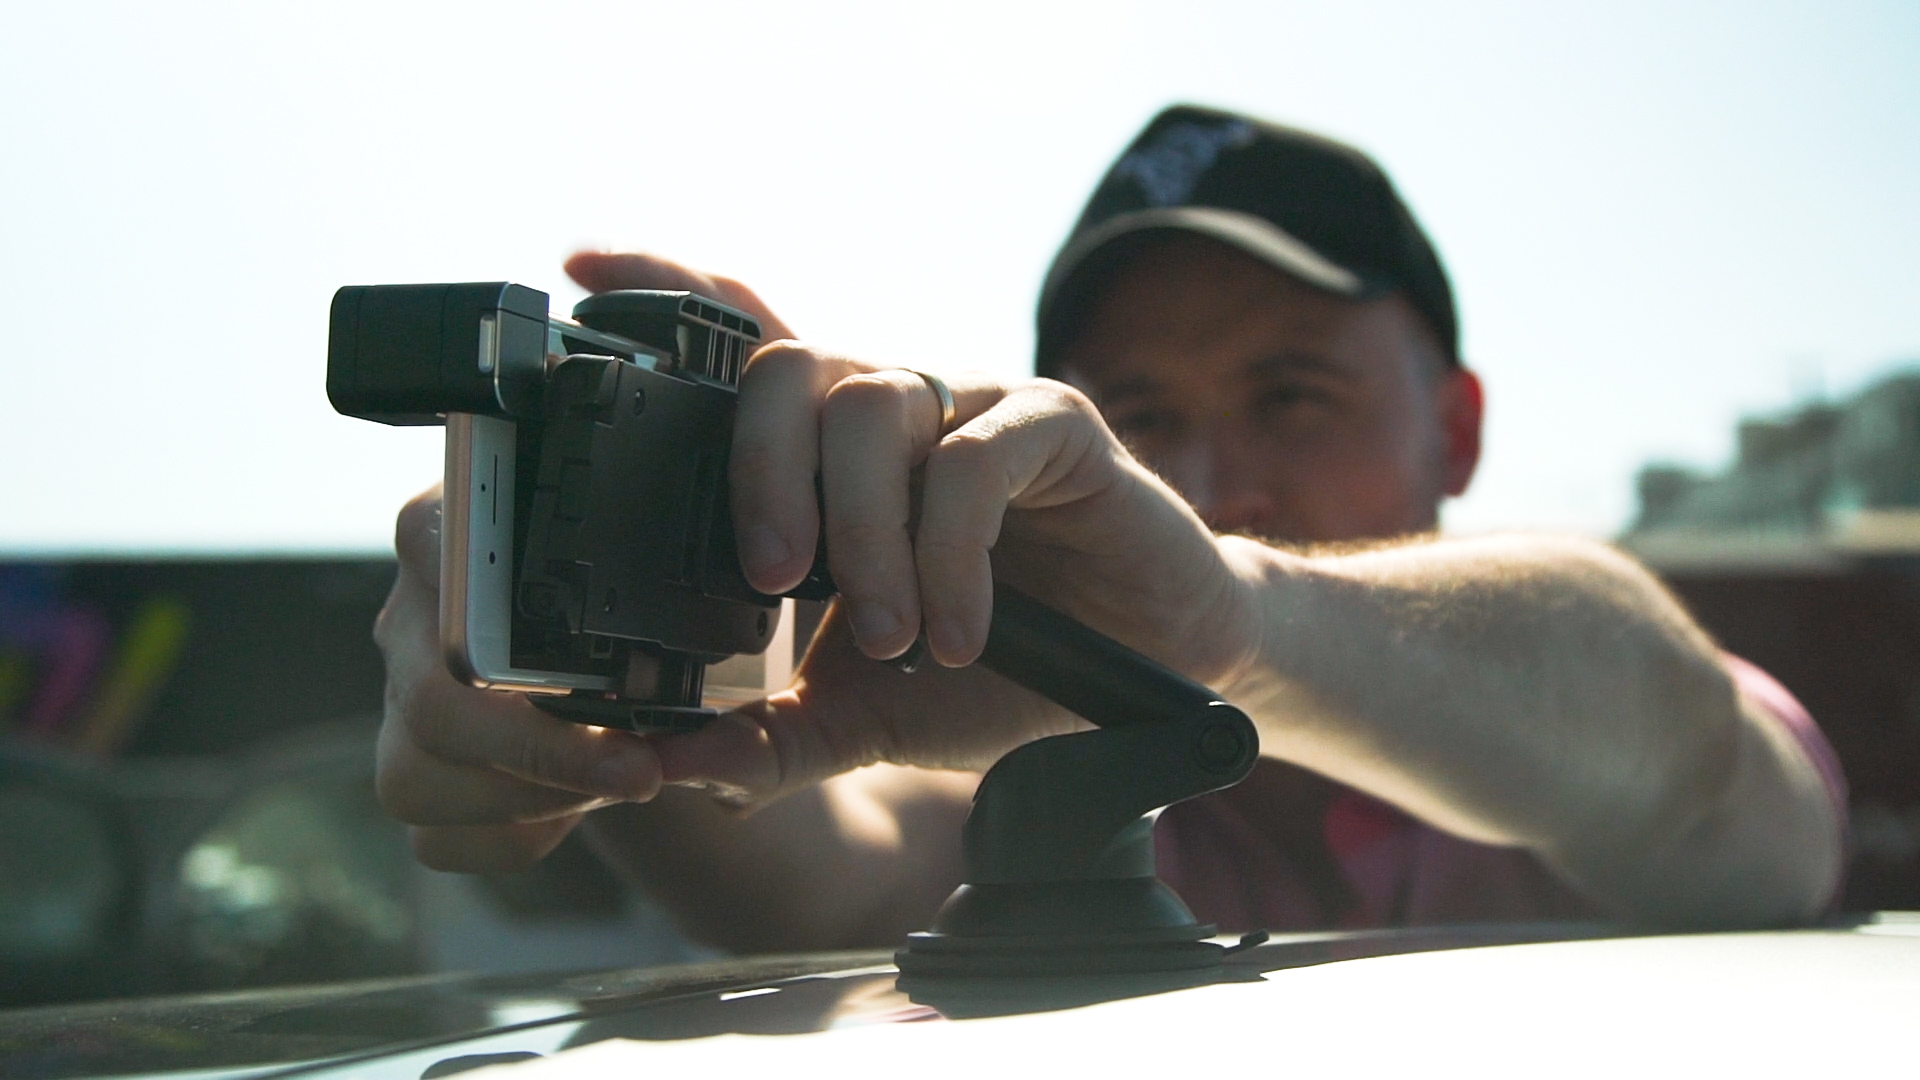 Toyota Camry Hybrid and Director Marcelo Tobar Team Up to Show You How to Shoot Car Scenes Using a Cell Phone